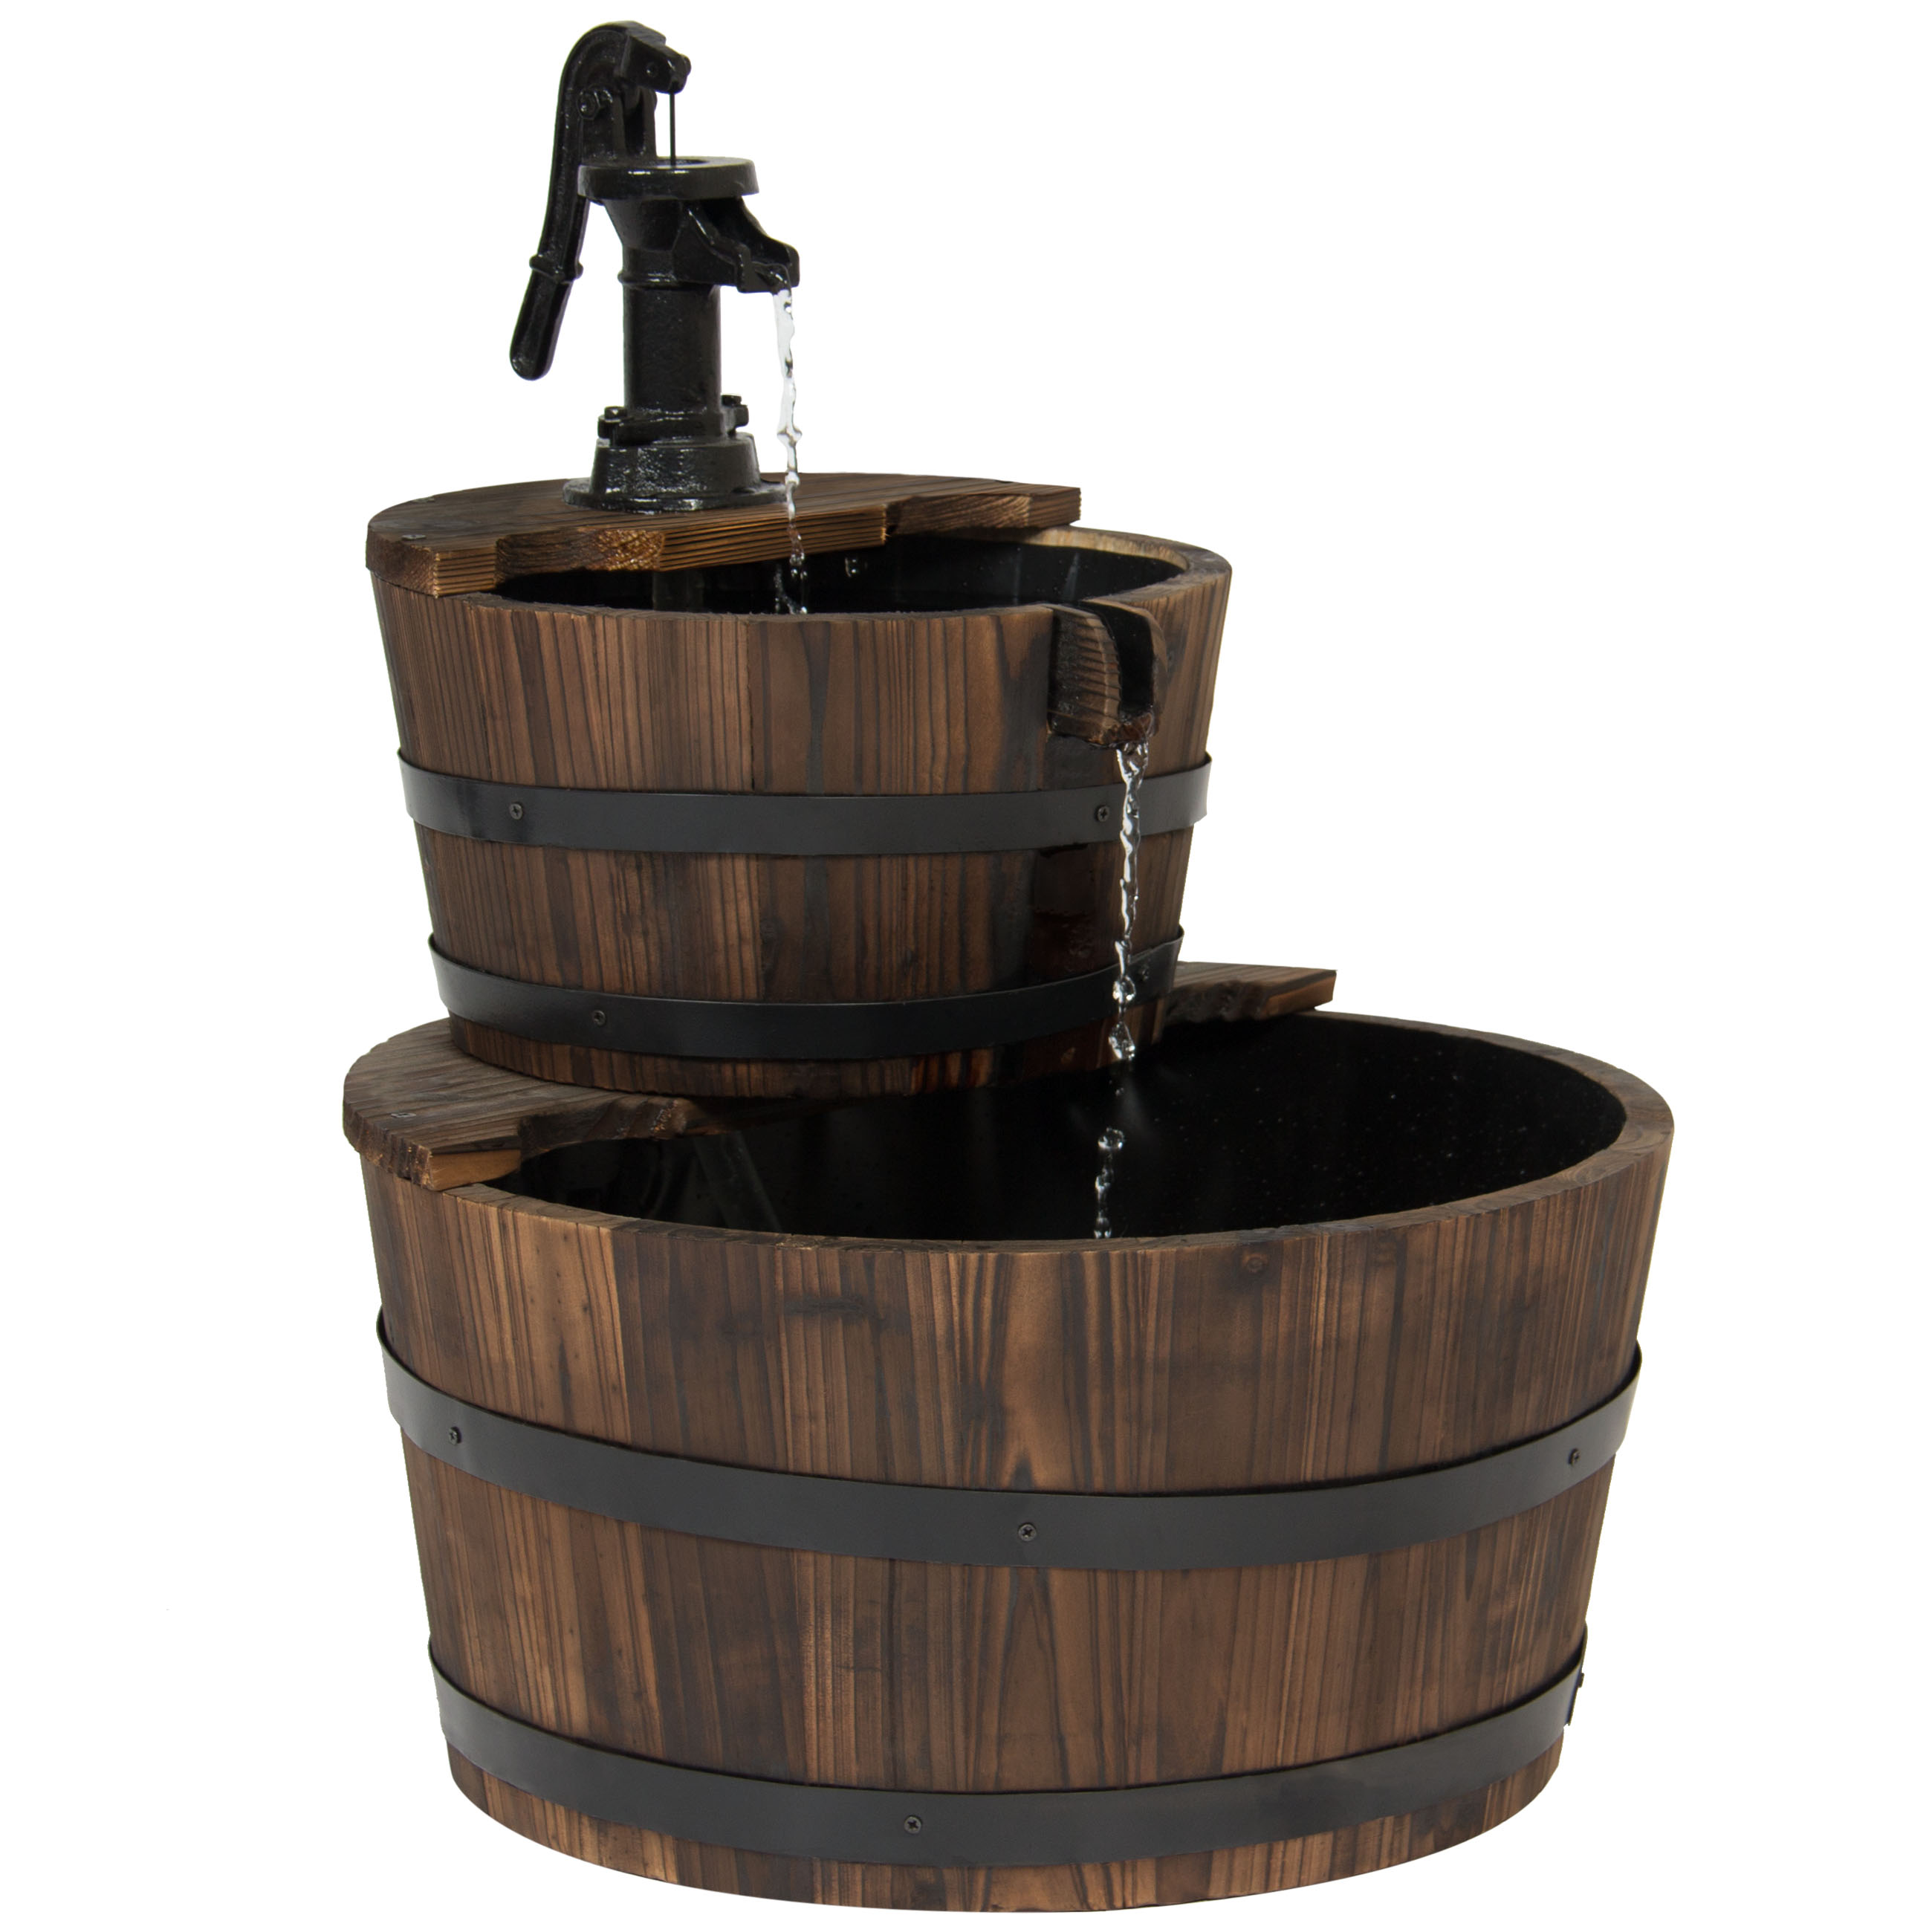 Best Choice Products Outdoor Garden Decor 2-Tier Wood Barrel Water Fountain W  Pump Brown by Best Choice Products